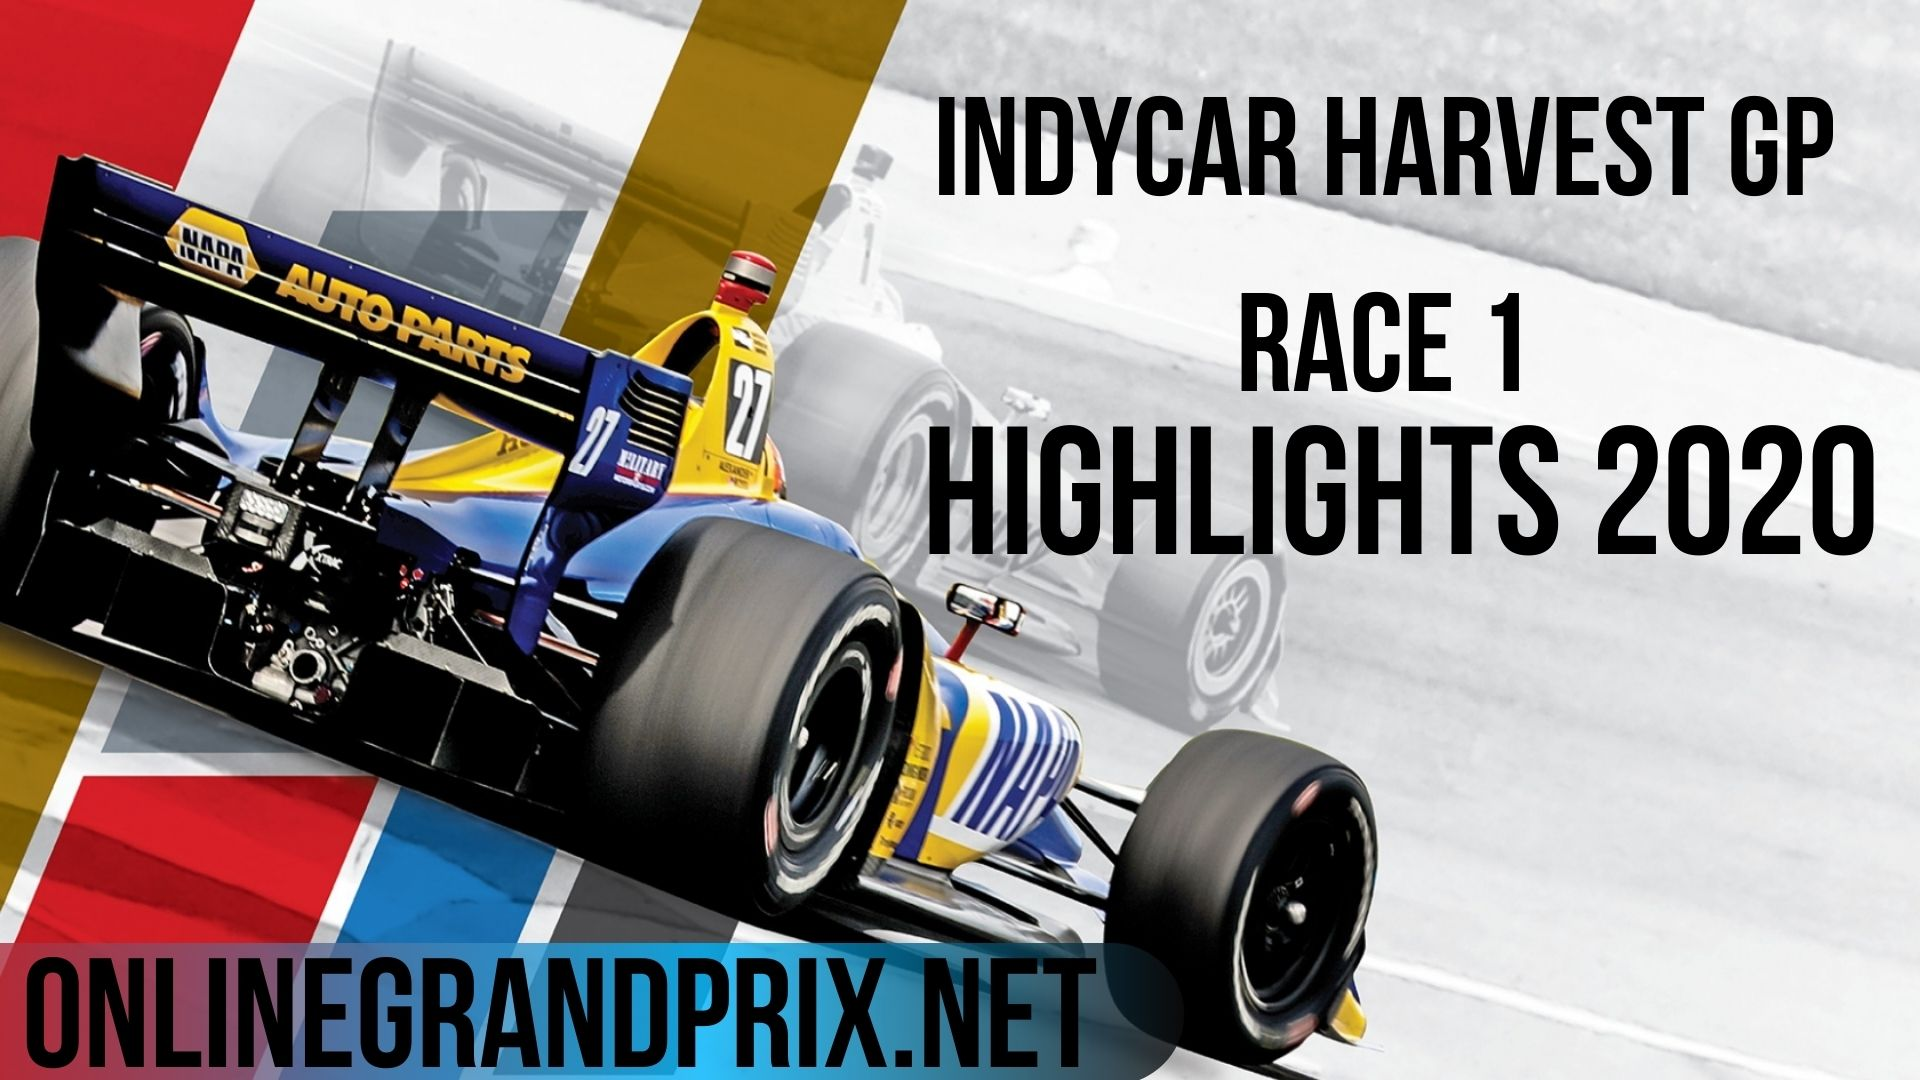 INDYCAR Harvest GP Race 1 Highlights 2020